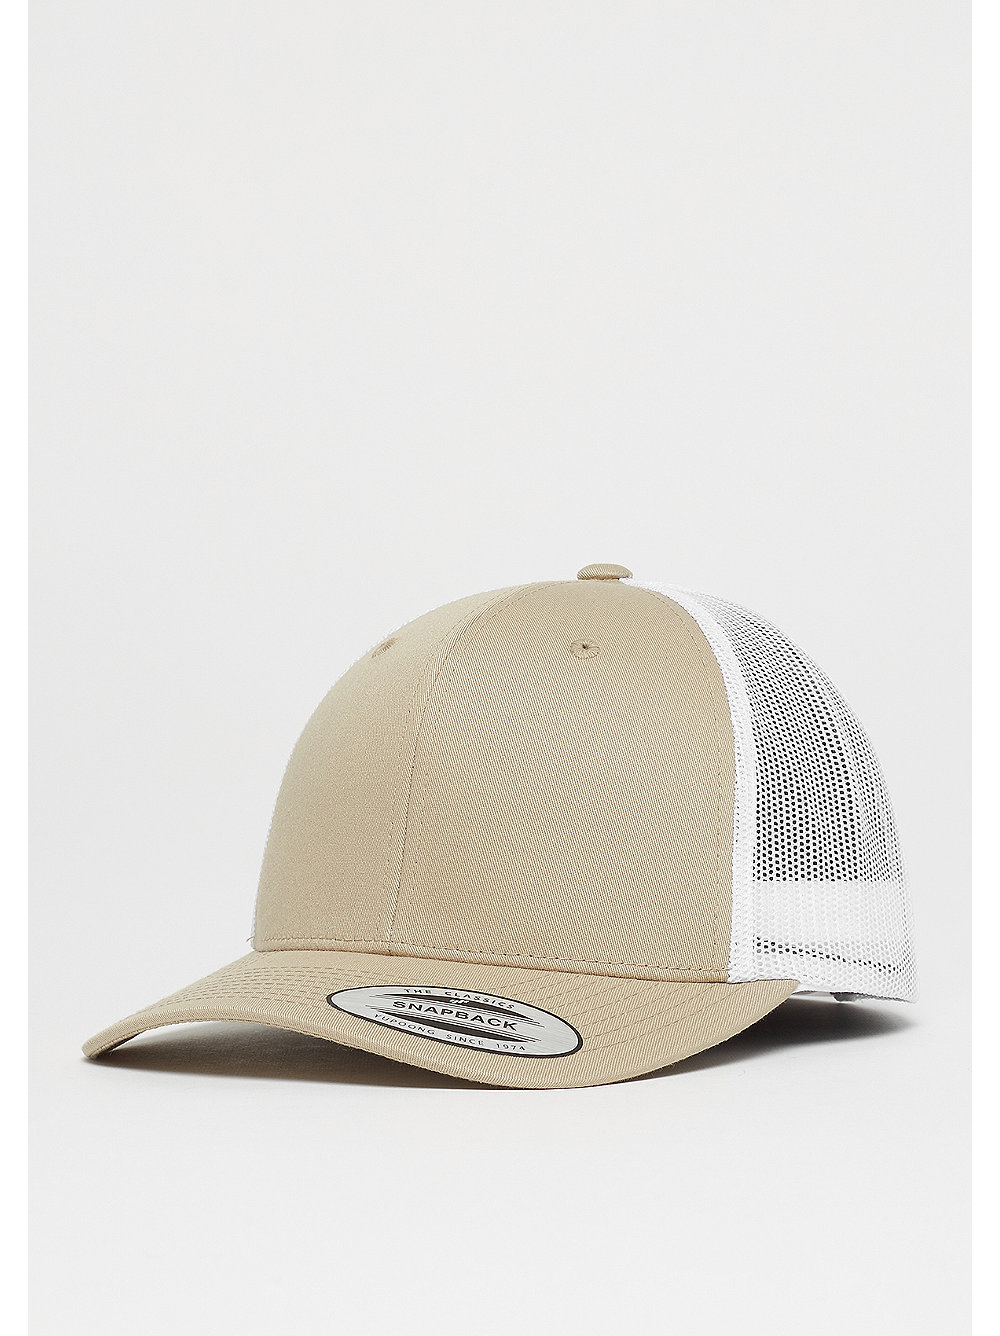 Retro Trucker 2-Tone khaki/white